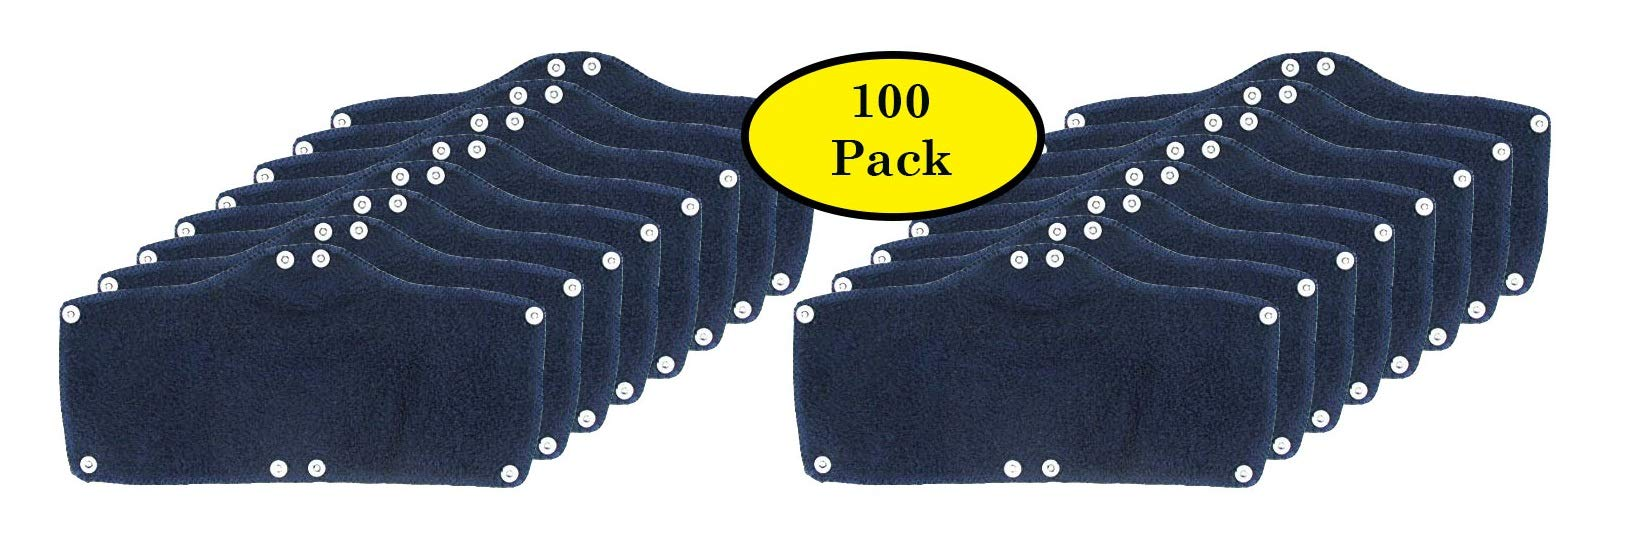 100 Pack Best Hard Hat Sweatband Navy Blue Washable Snap On Sweat Band Liner Safety Accessories by ACERPAL